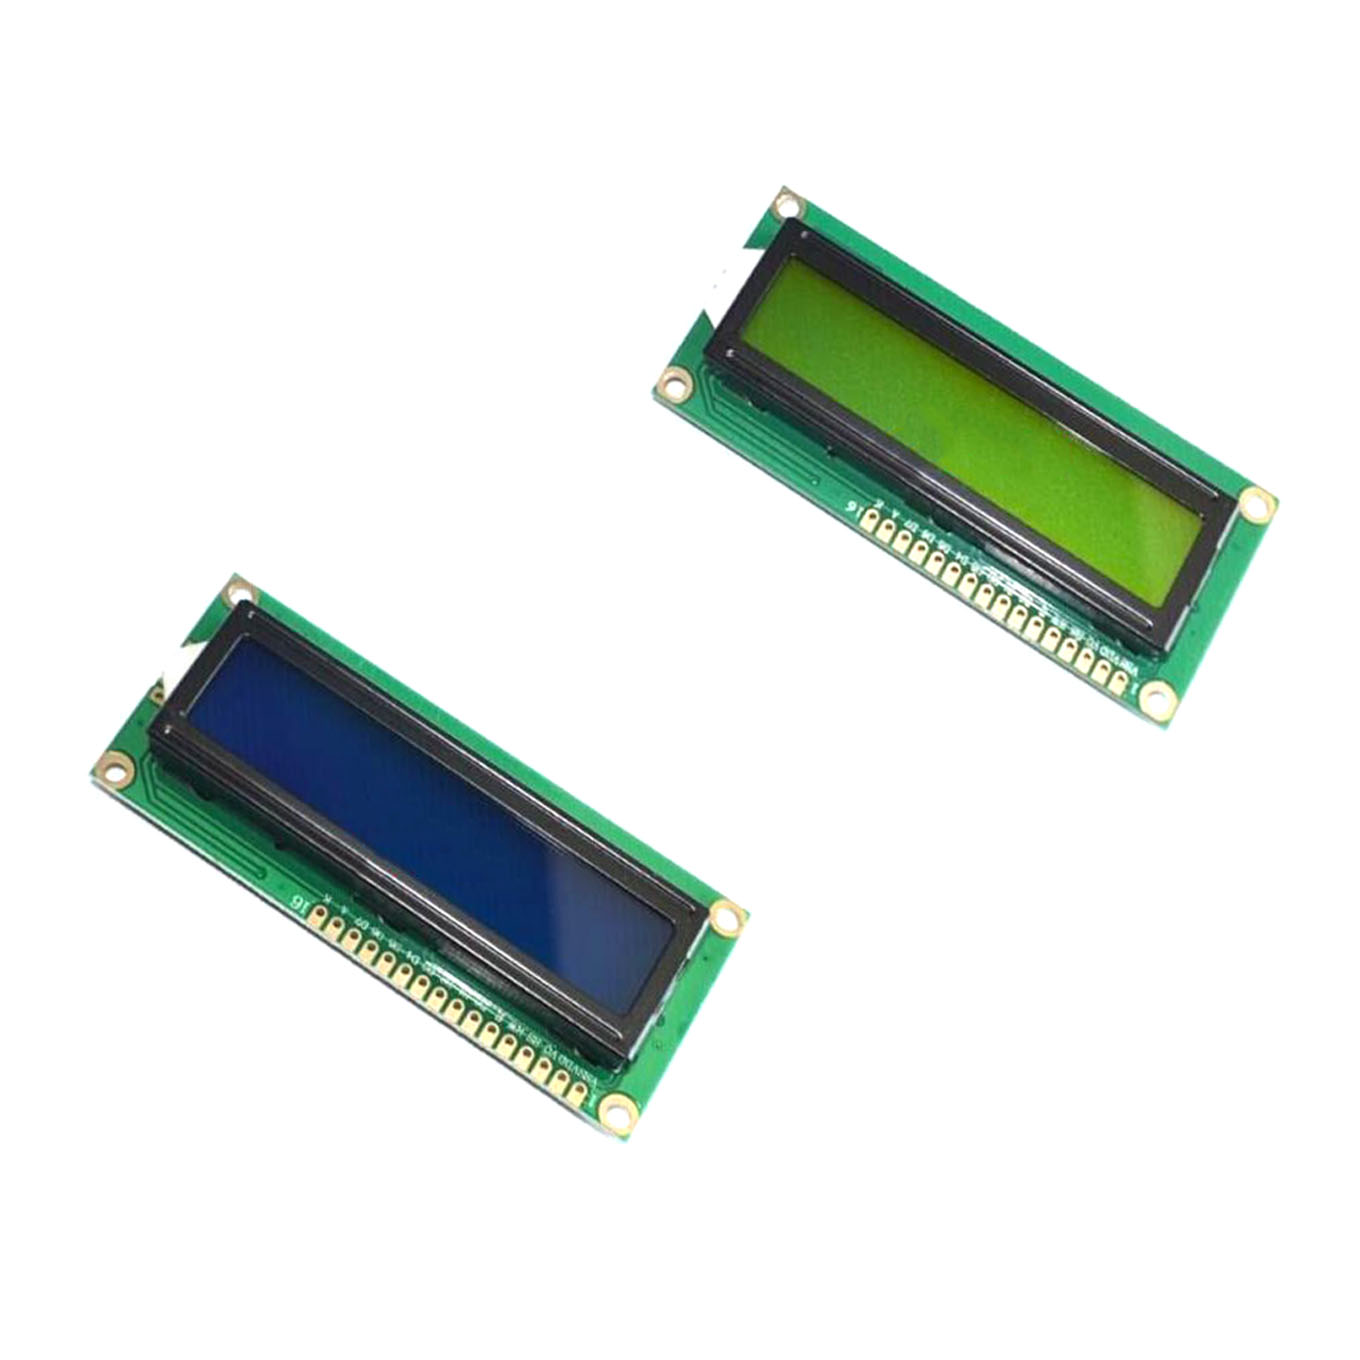 1PCS LCD Module Blue Green Screen IIC/I2C 1602 For Arduino 1602 LCD UNO R3 Mega2560 LCD1602